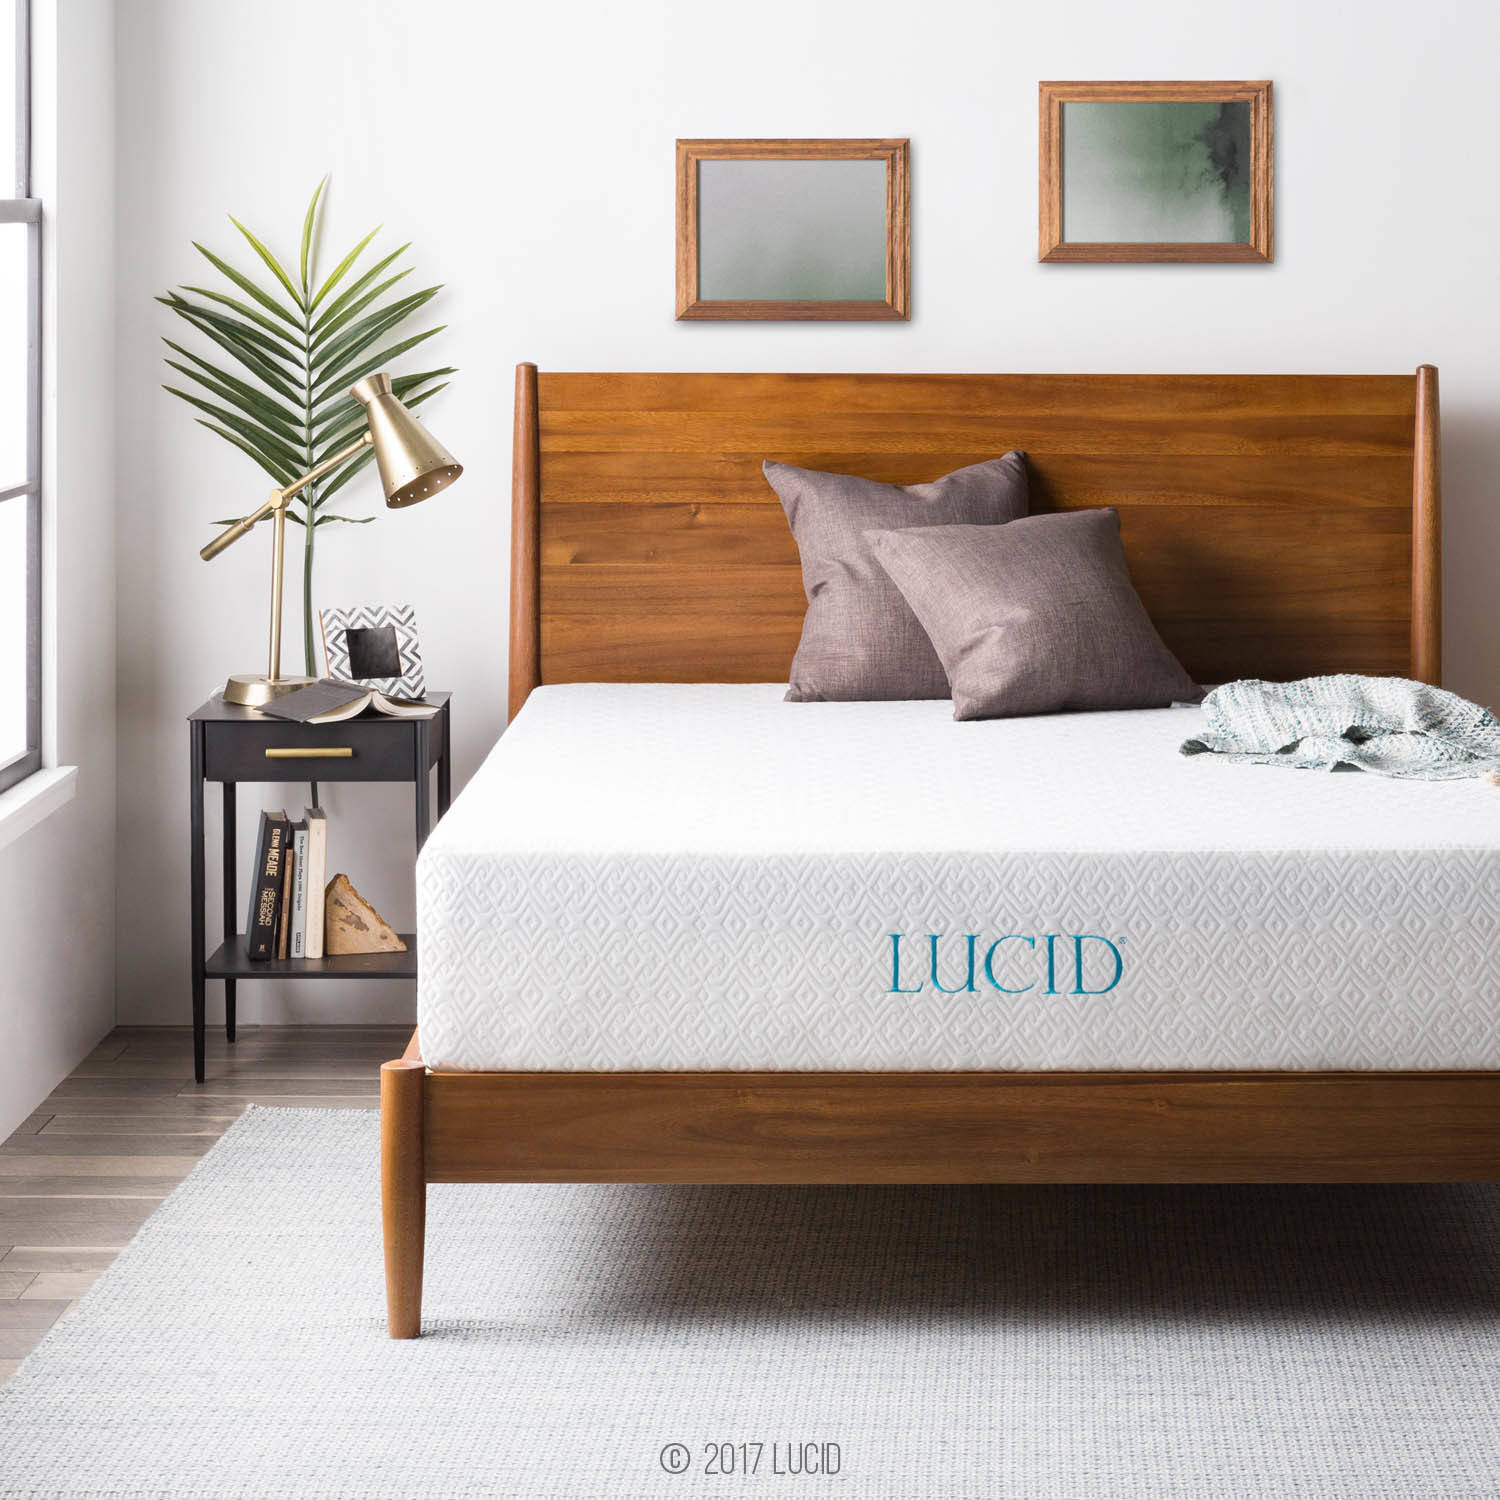 "Lucid 12"" Memory Foam Mattress, Triple-Layer, Multiple Sizes by CVB Inc."